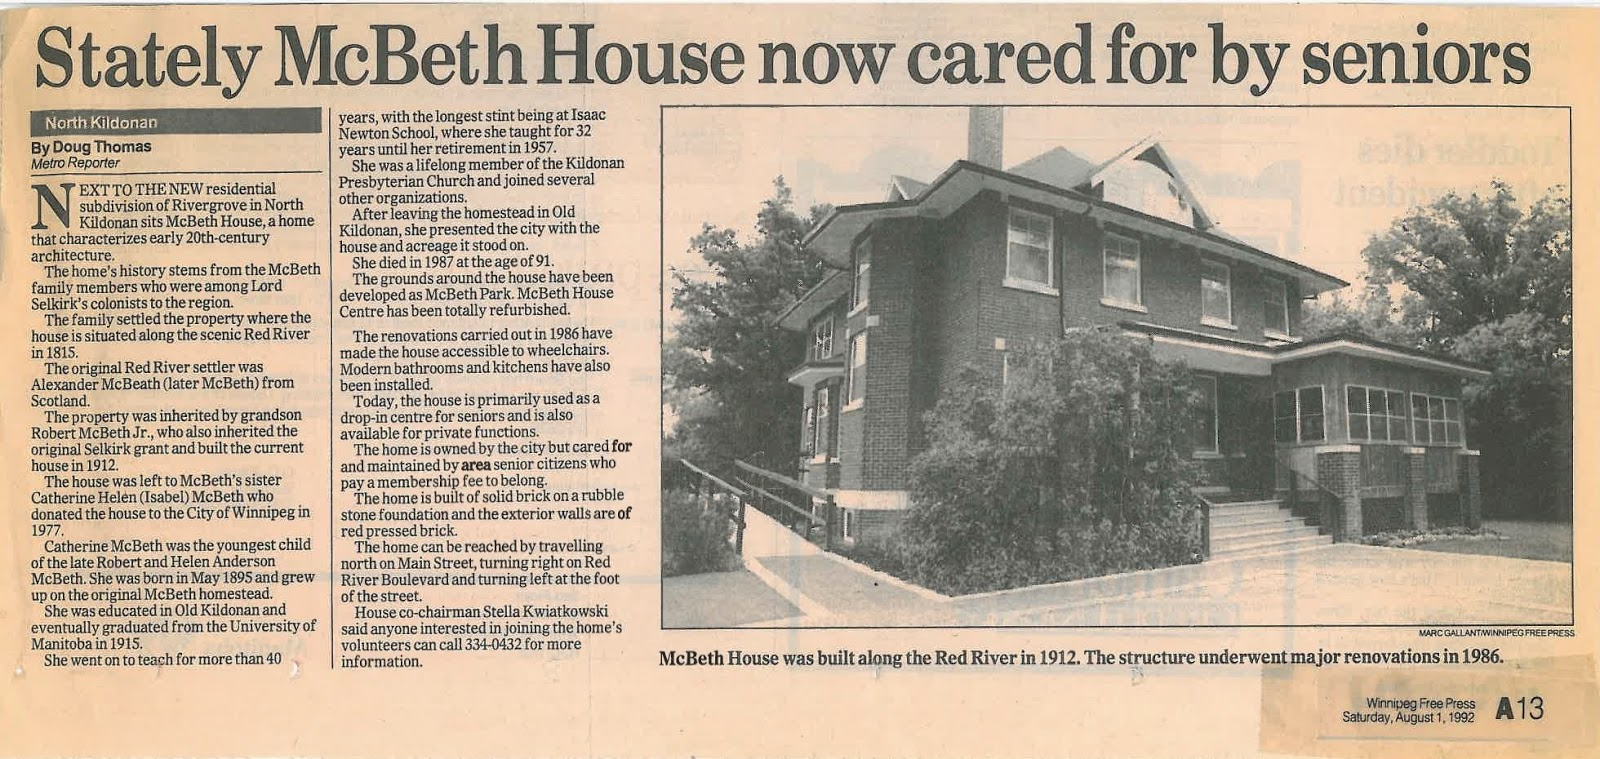 Stately McBeth House now cared for by seniors - click for article PDF